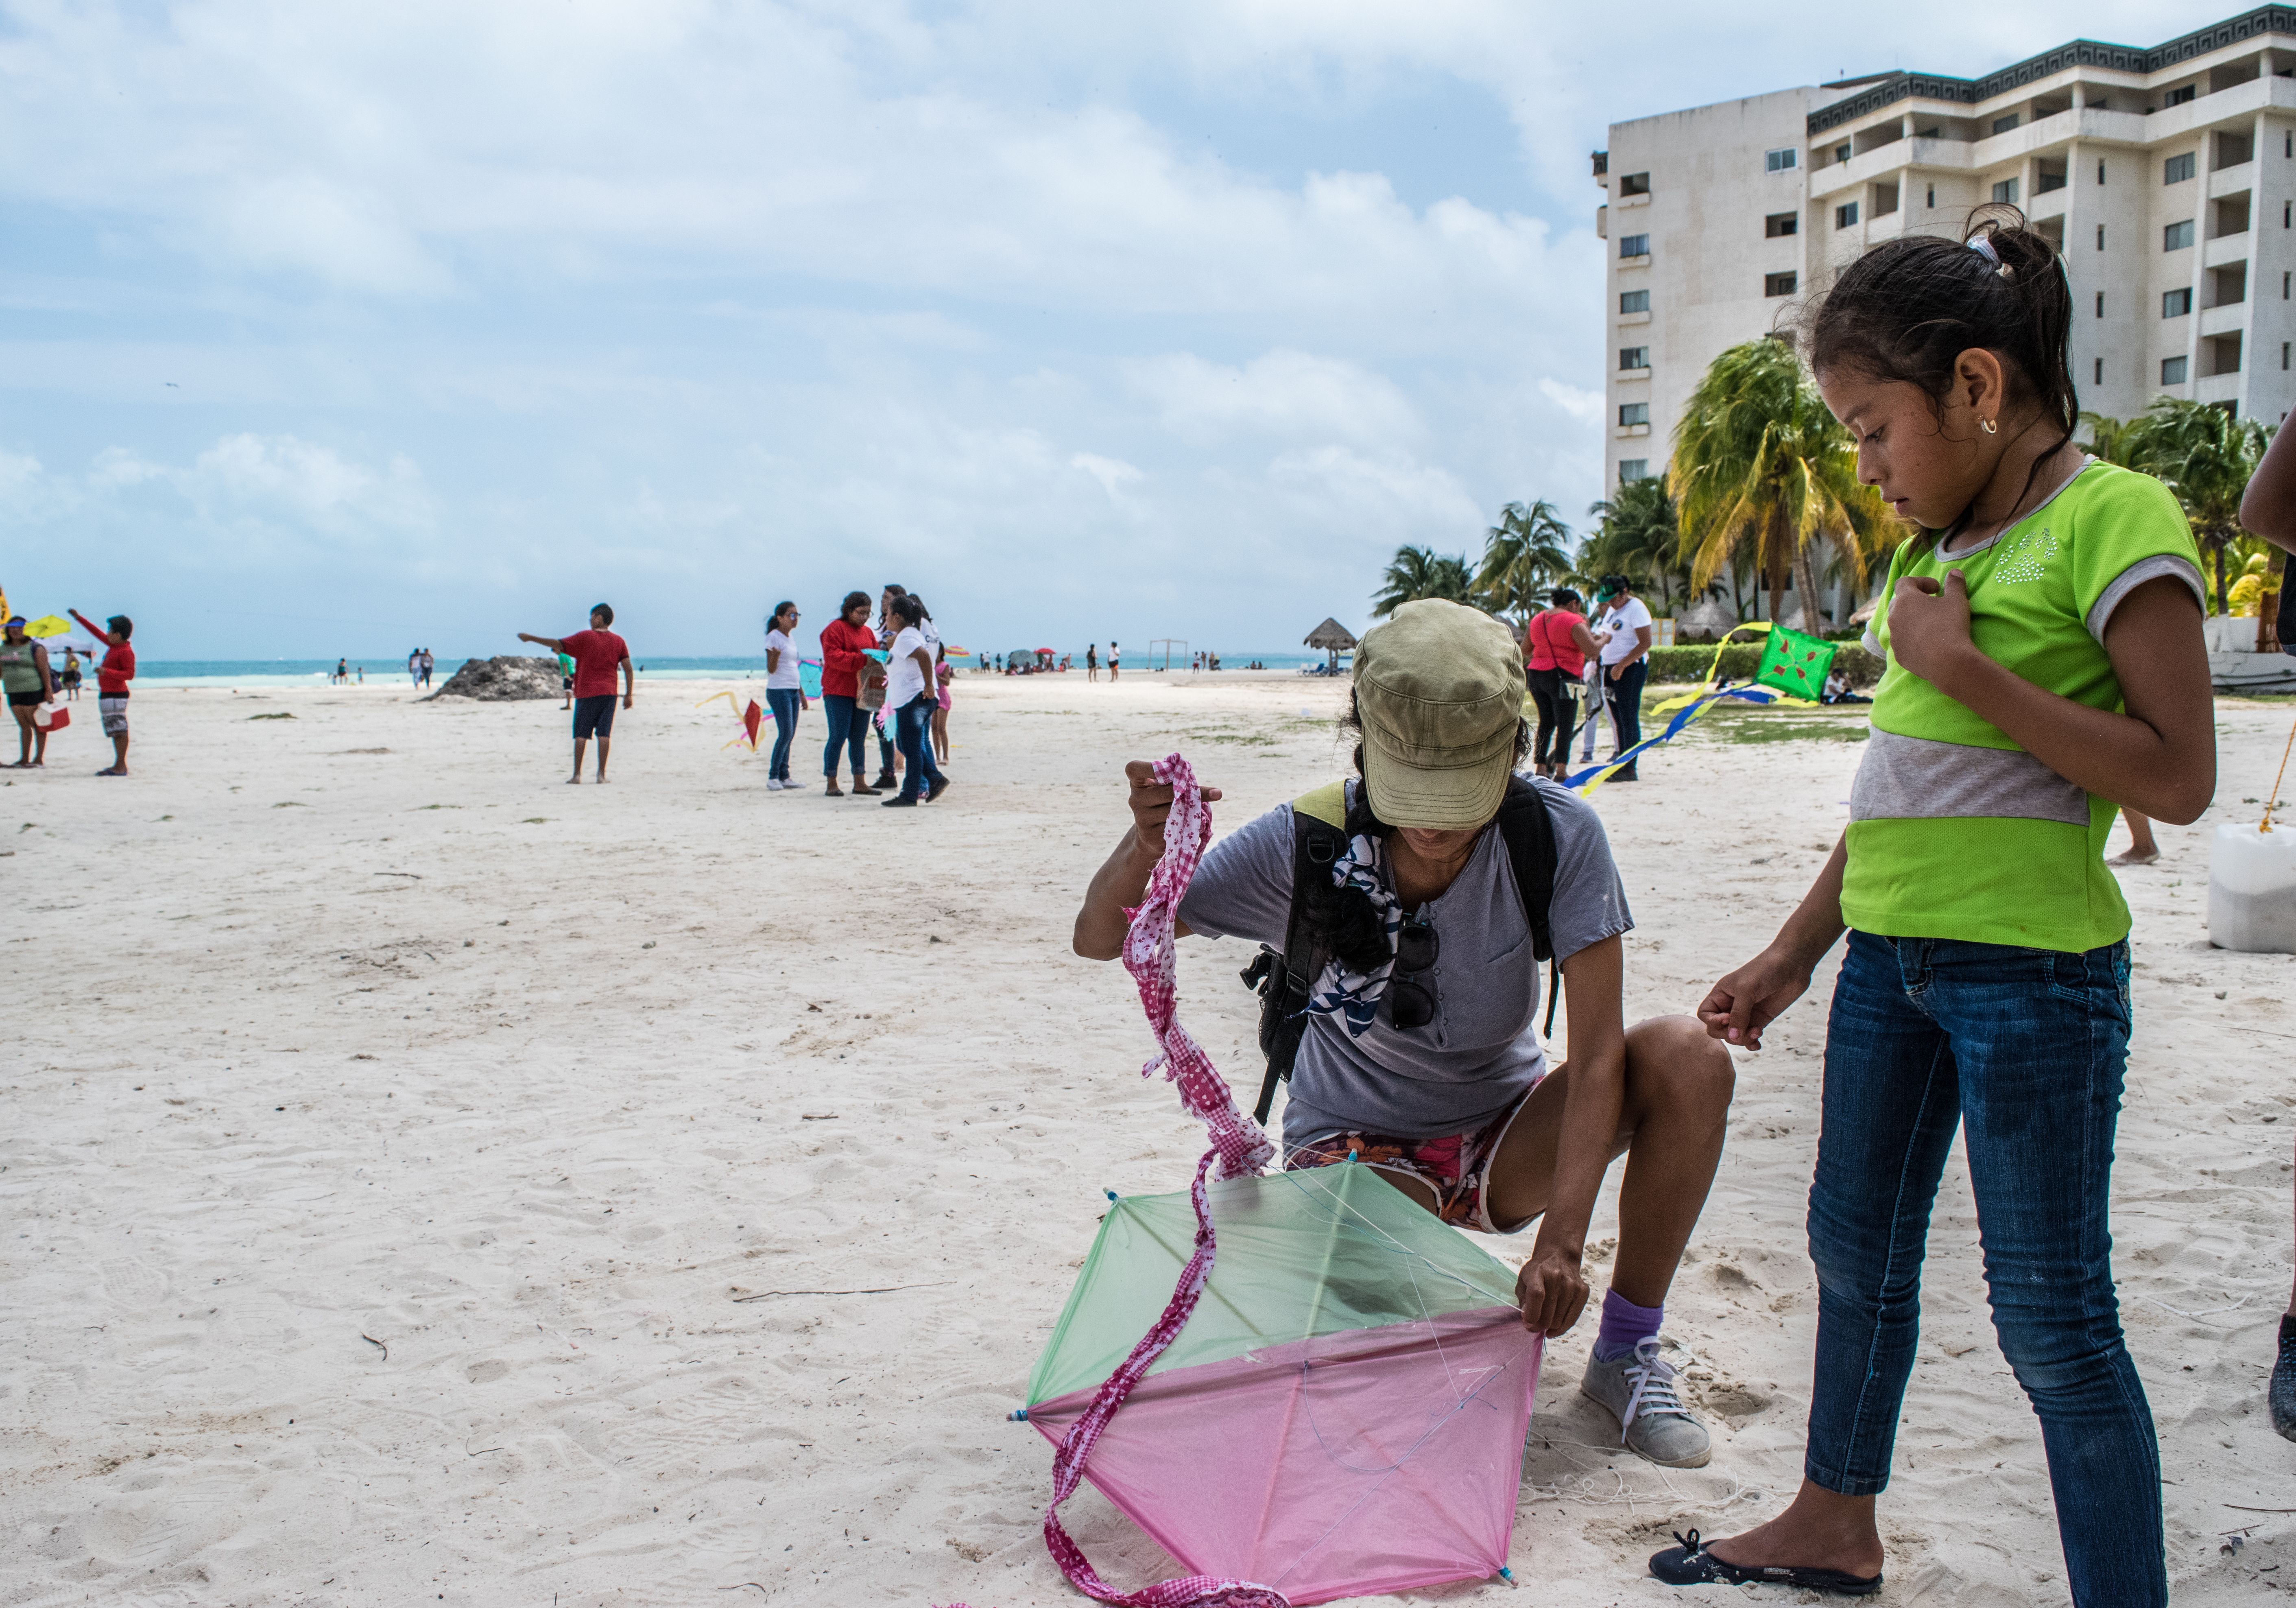 Cris helping a girl with her kite